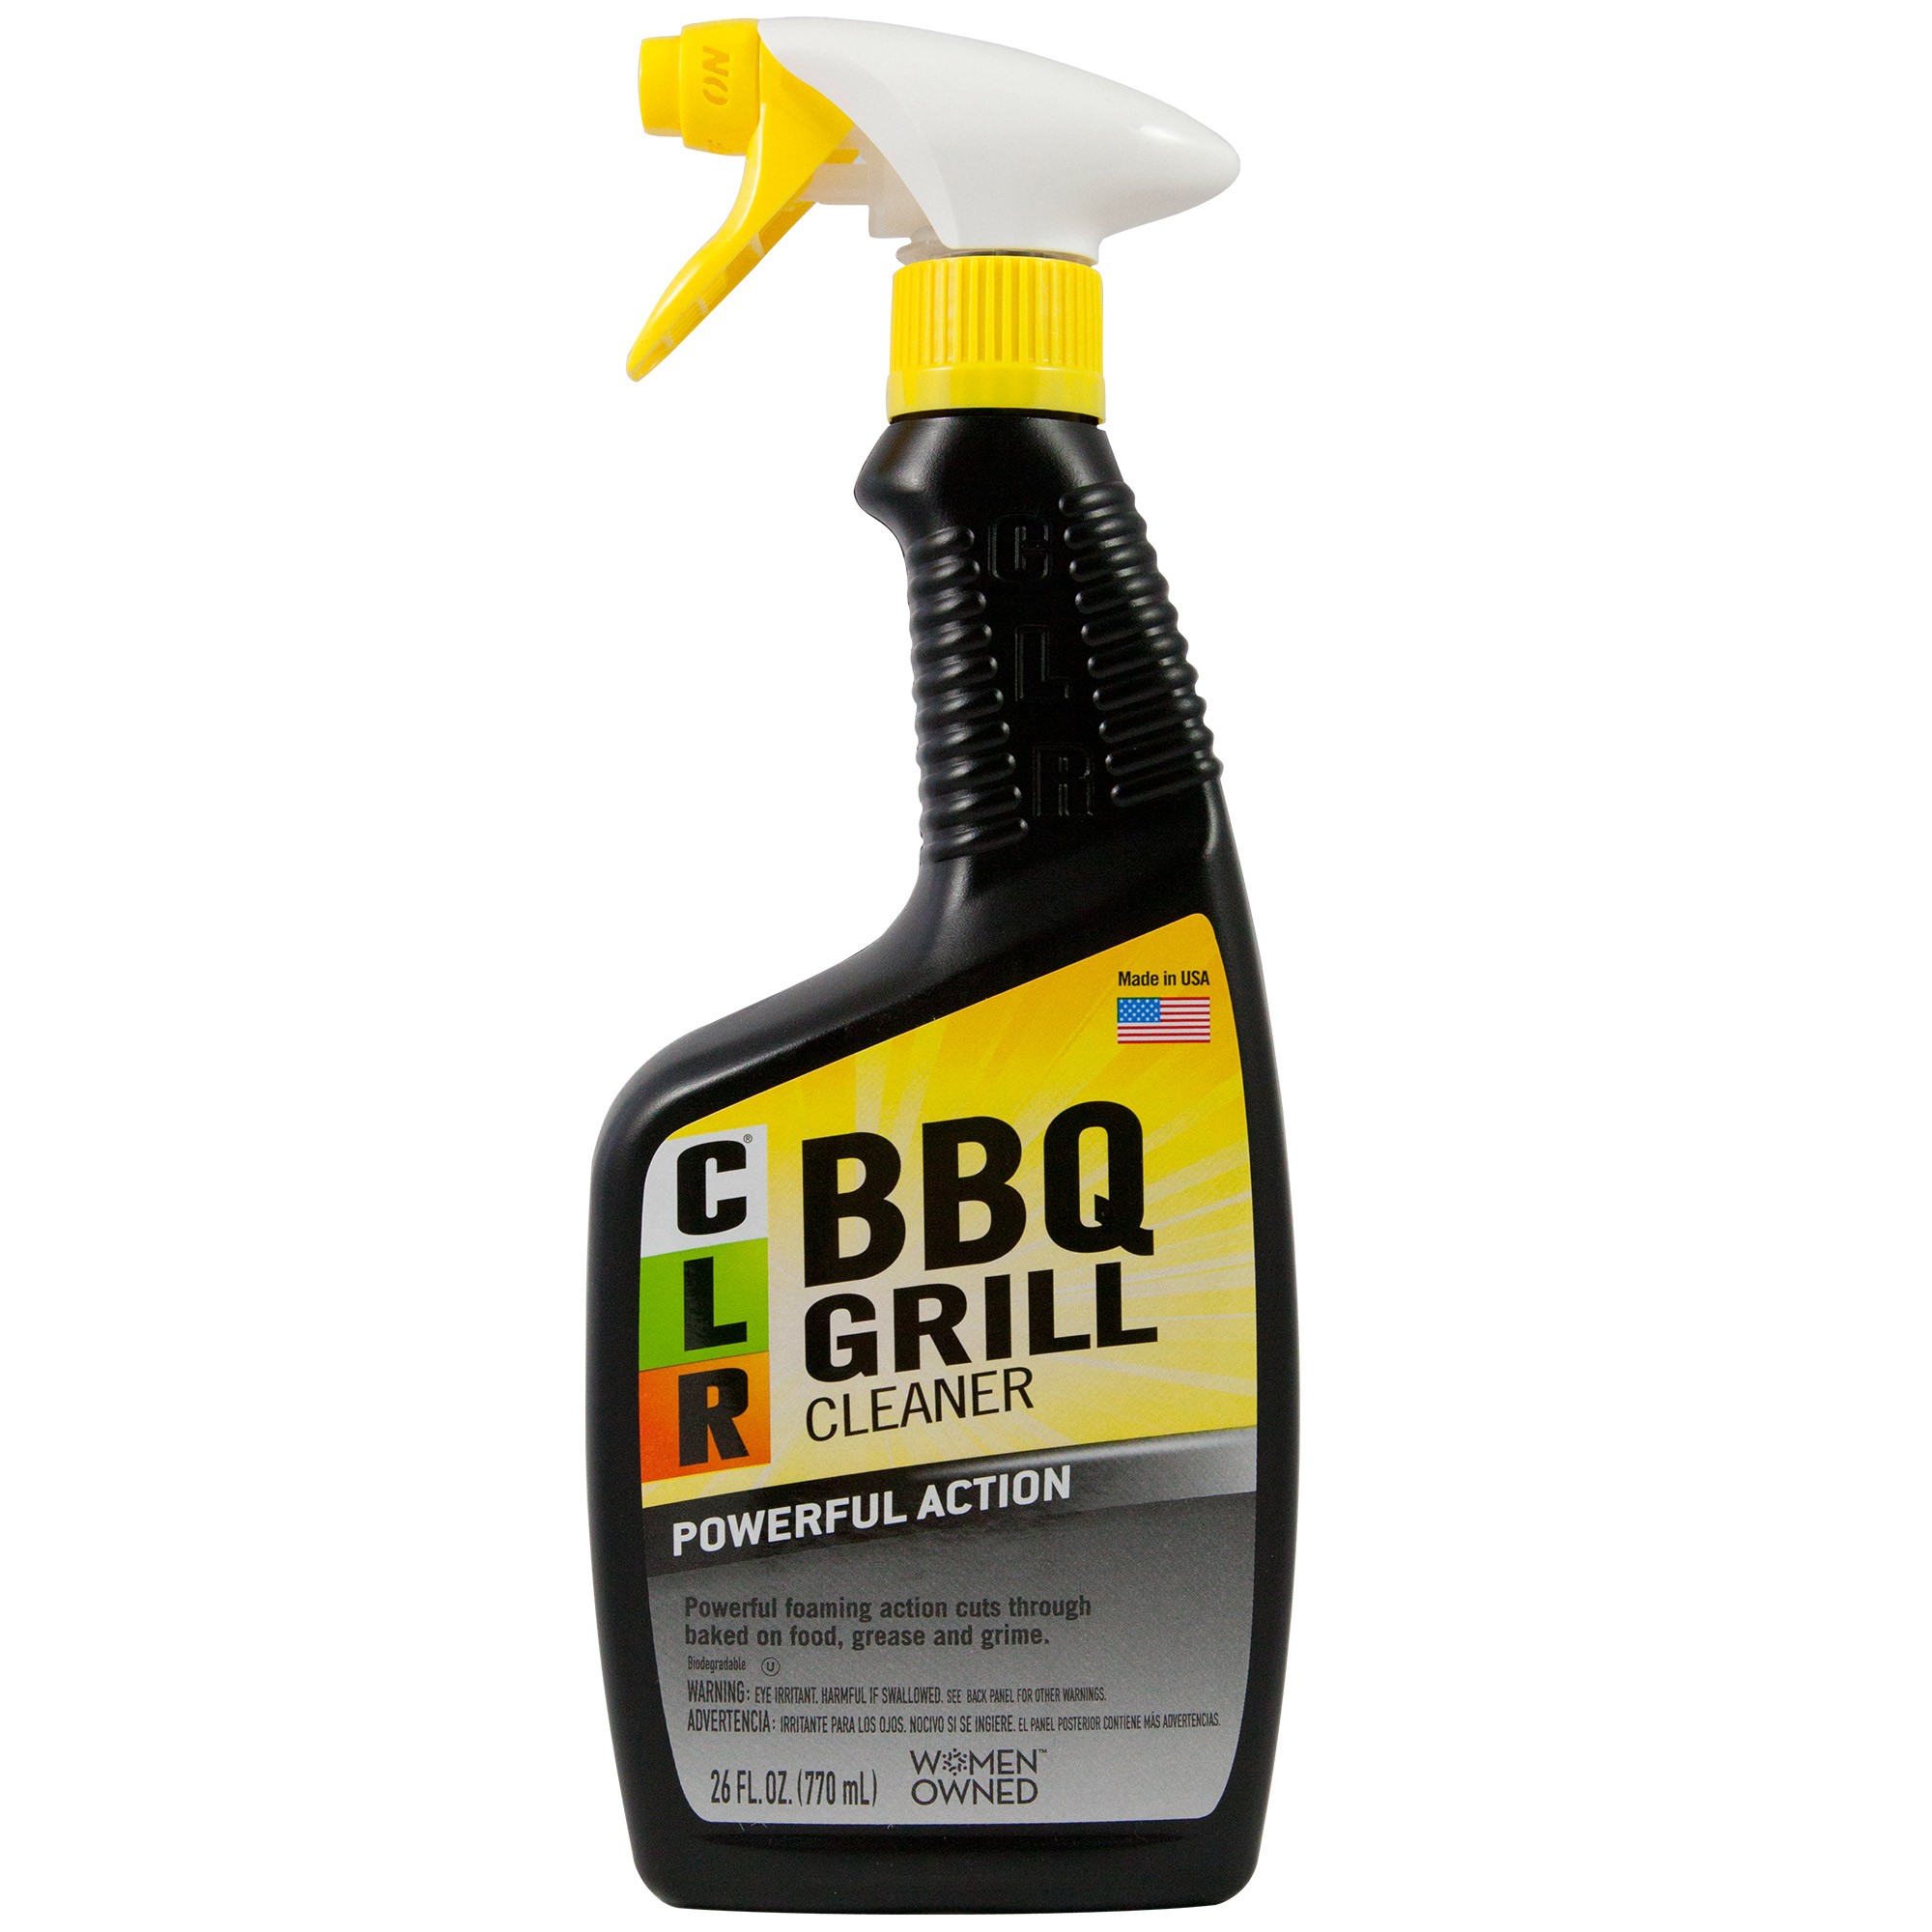 CLR BBQ Grill Cleaner, Powerful Foaming Trigger, 26 Oz Spray Bottle